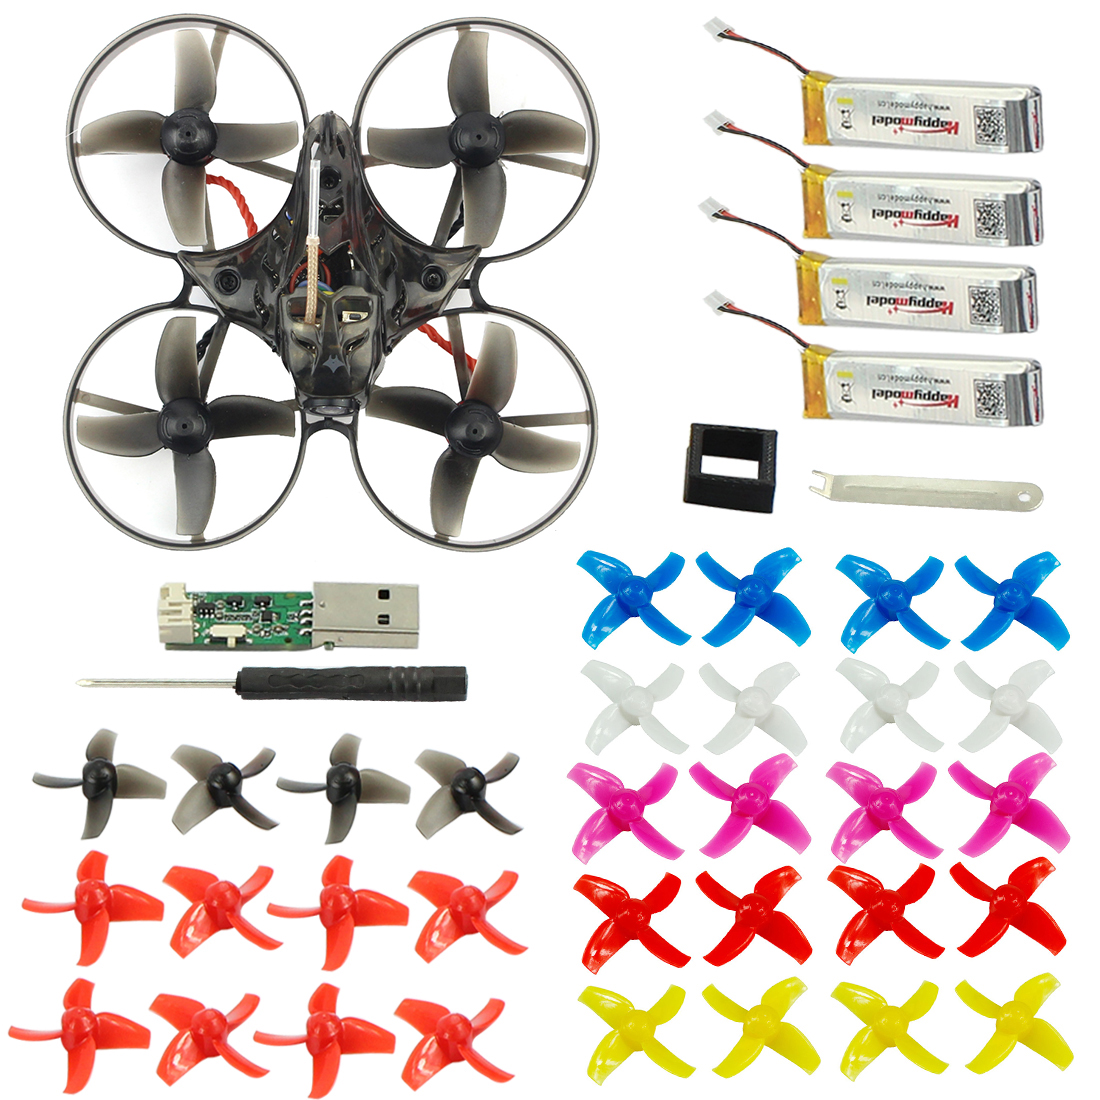 Mobula7 75mm Wheelbase <font><b>2S</b></font> Brushless BWhoop FPV Racing Drone w/ <font><b>Motor</b></font> Body Shell Transmitter Lipo Battery Kids Toys image